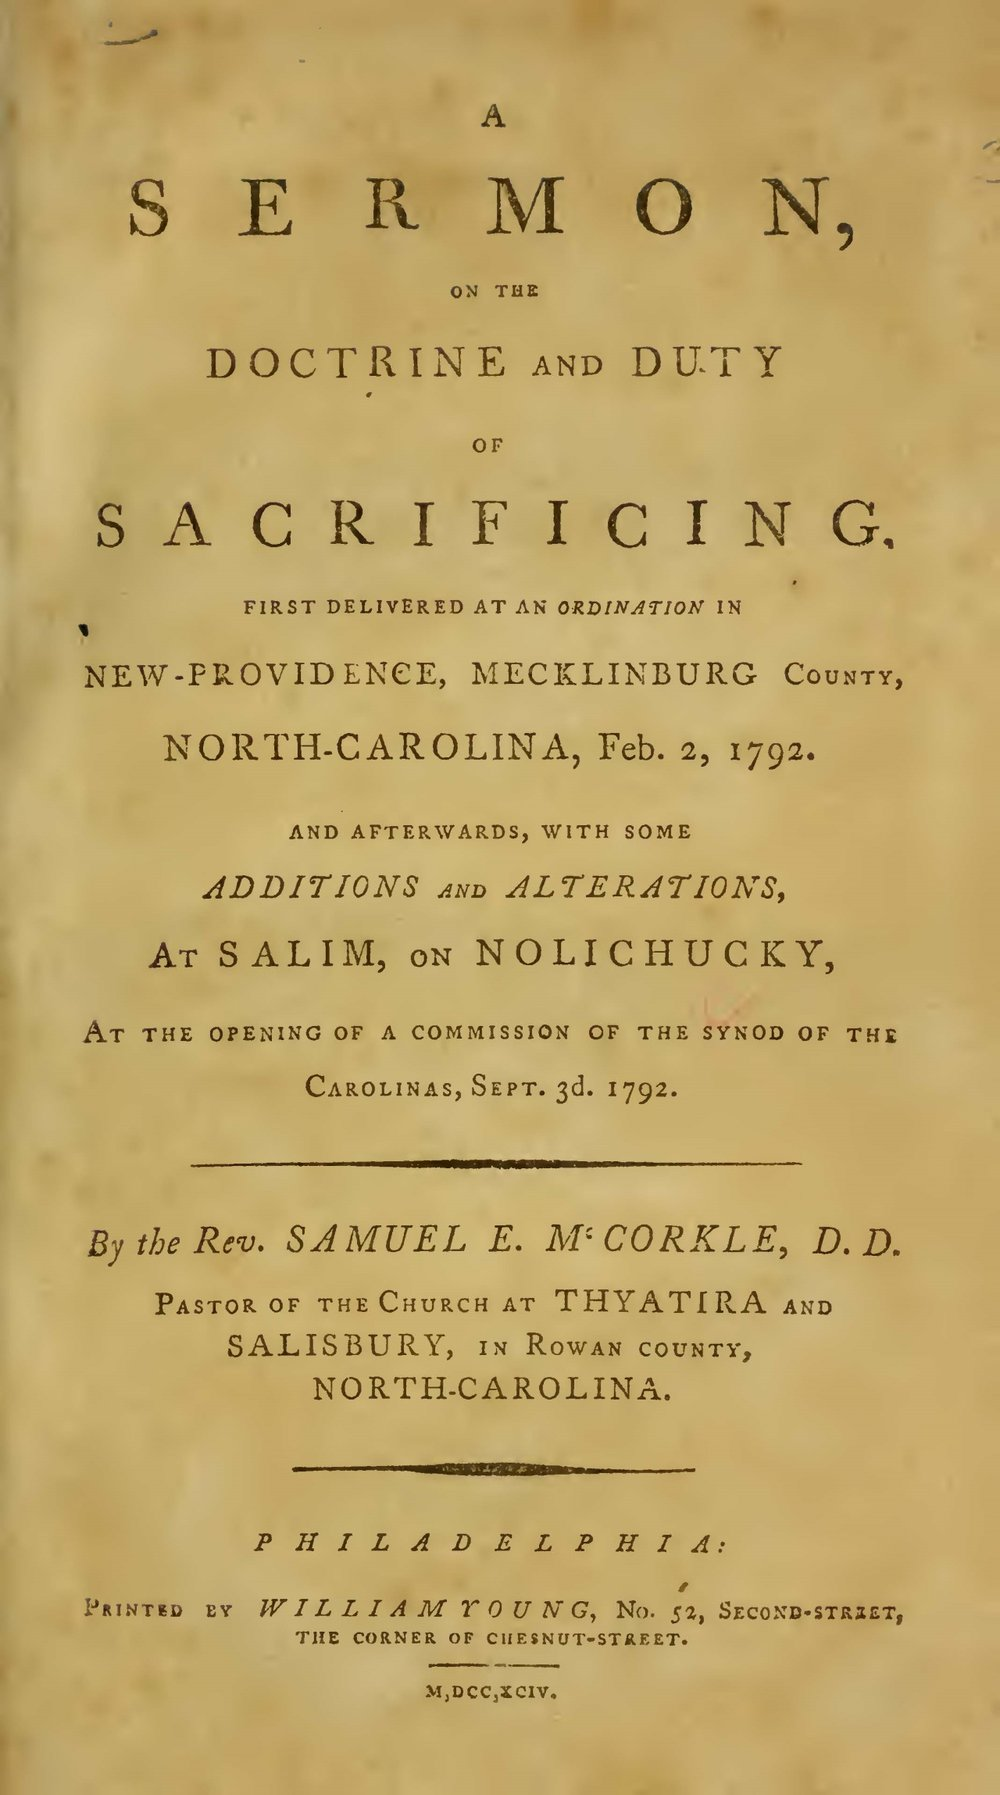 McCorkle, Samuel Eusebius, A Sermon on the Doctrine and Duty of Sacrificing Title Page.jpg